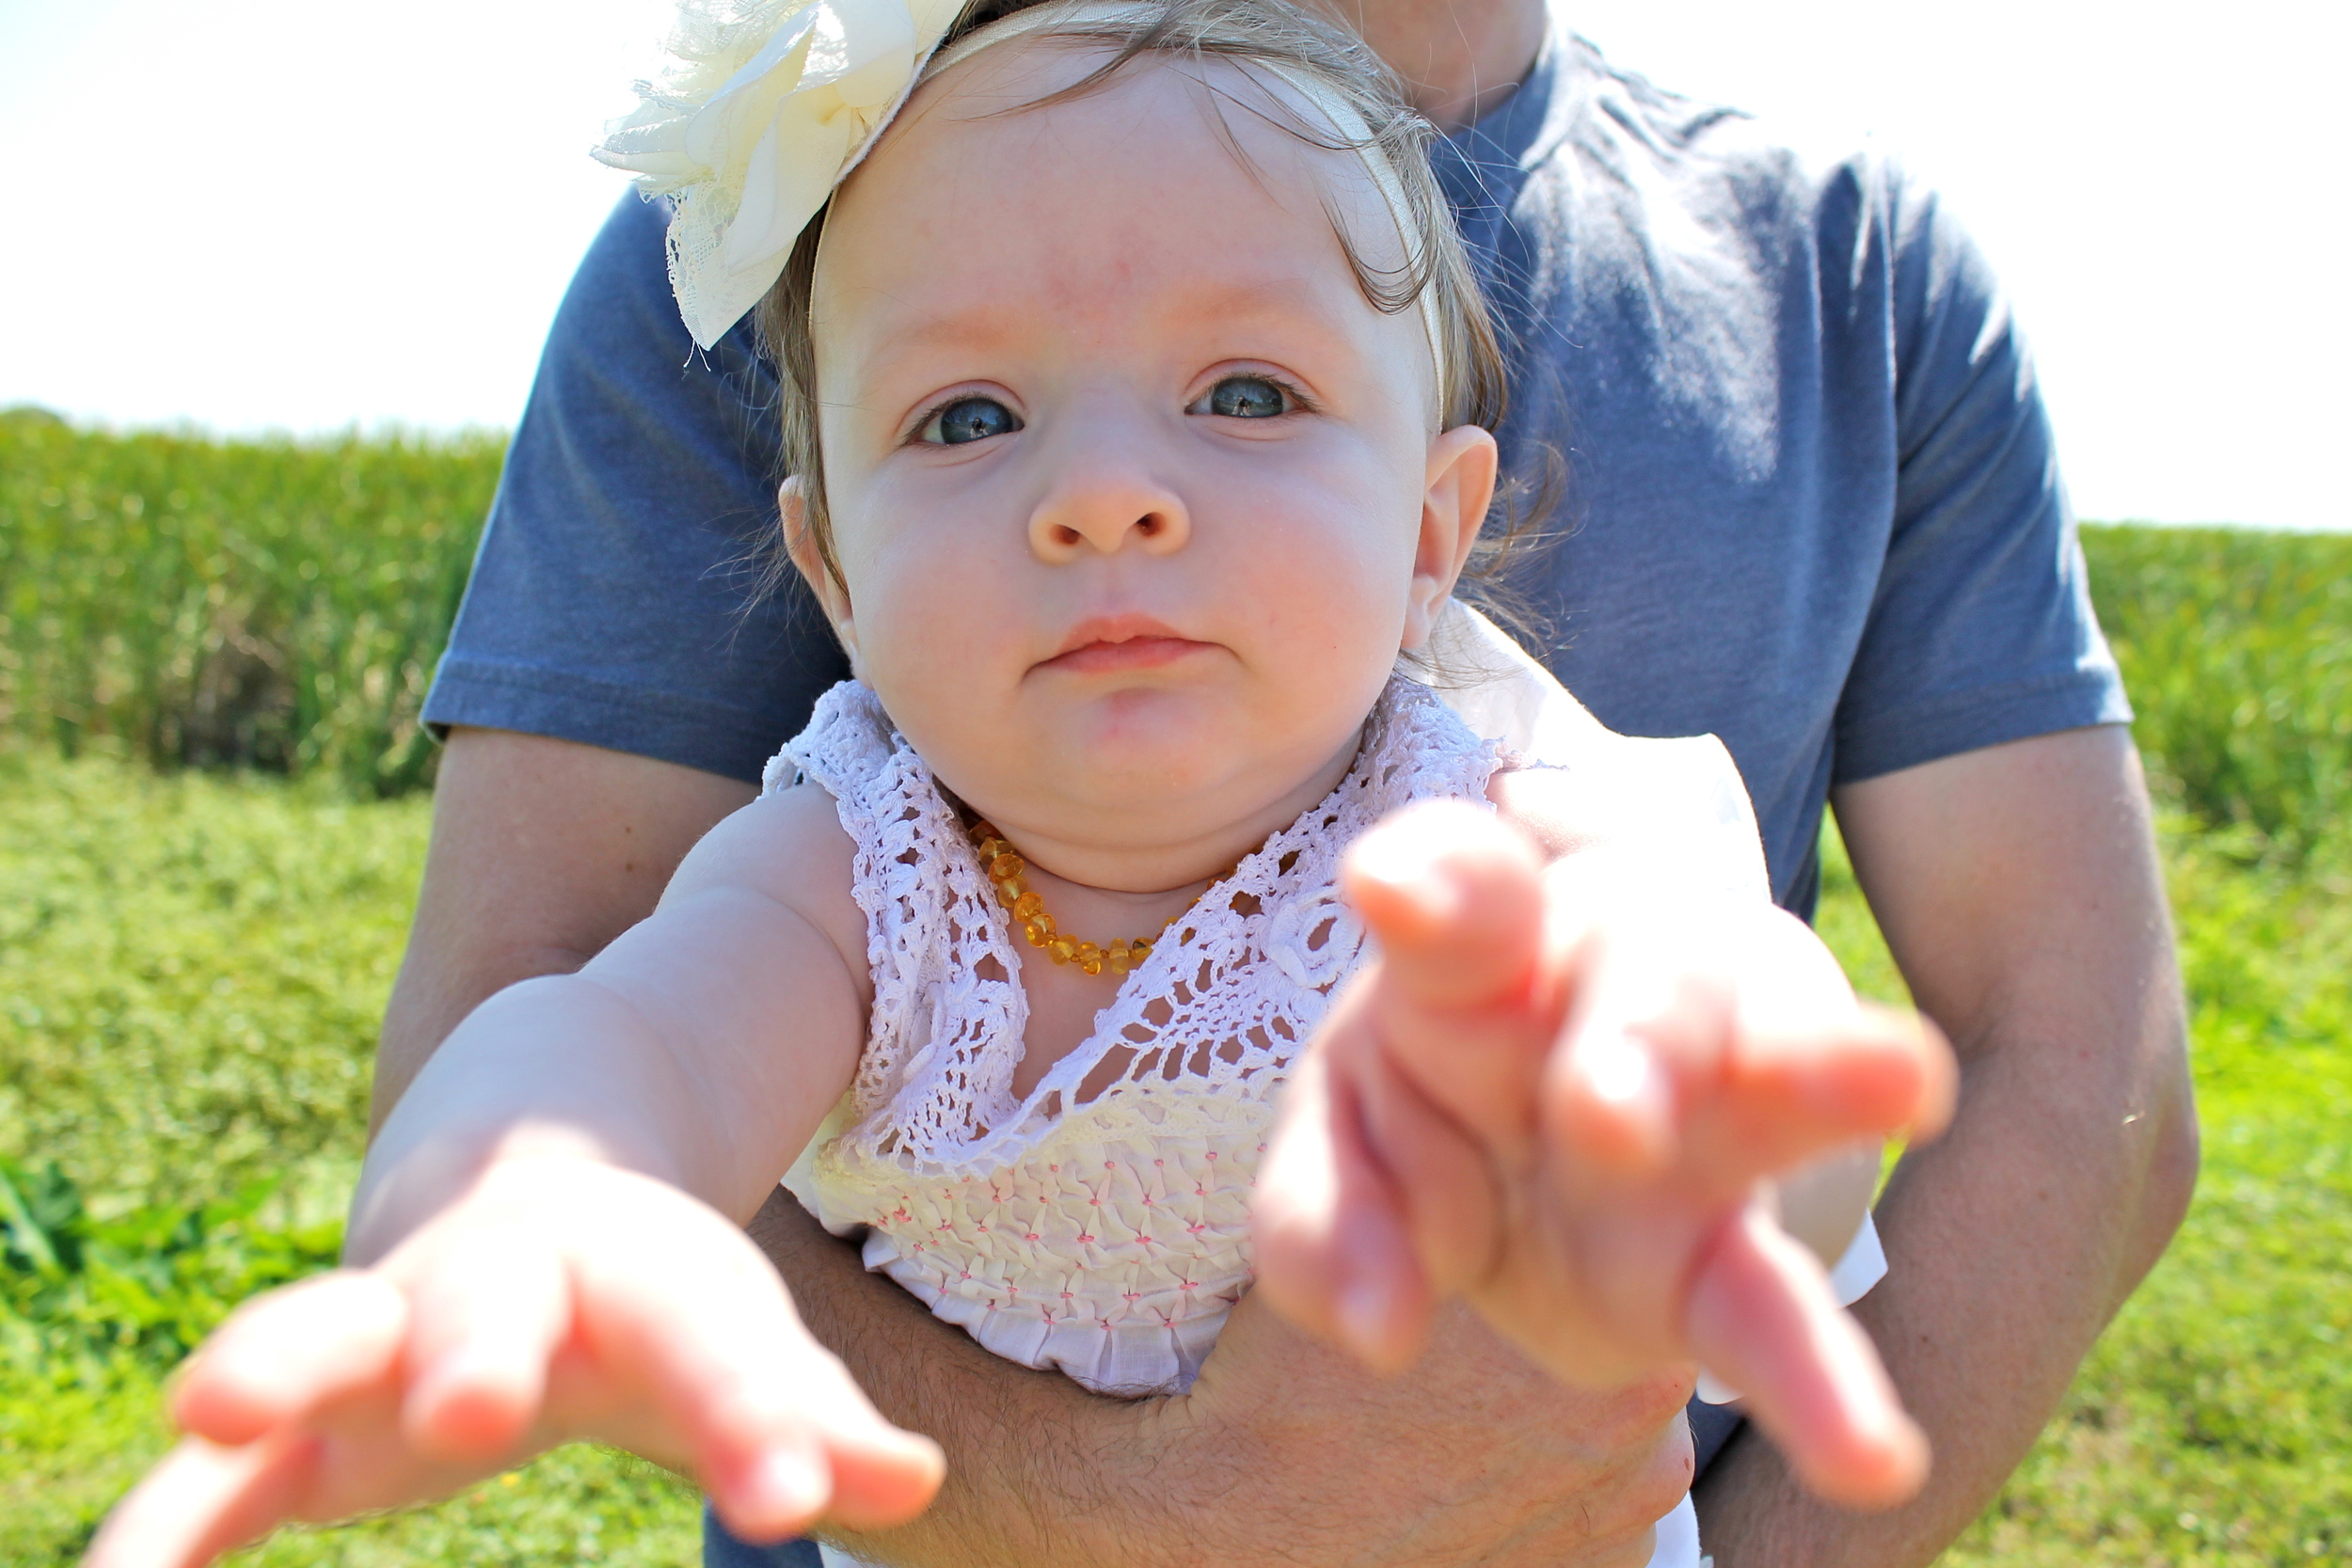 baby reaching for camera